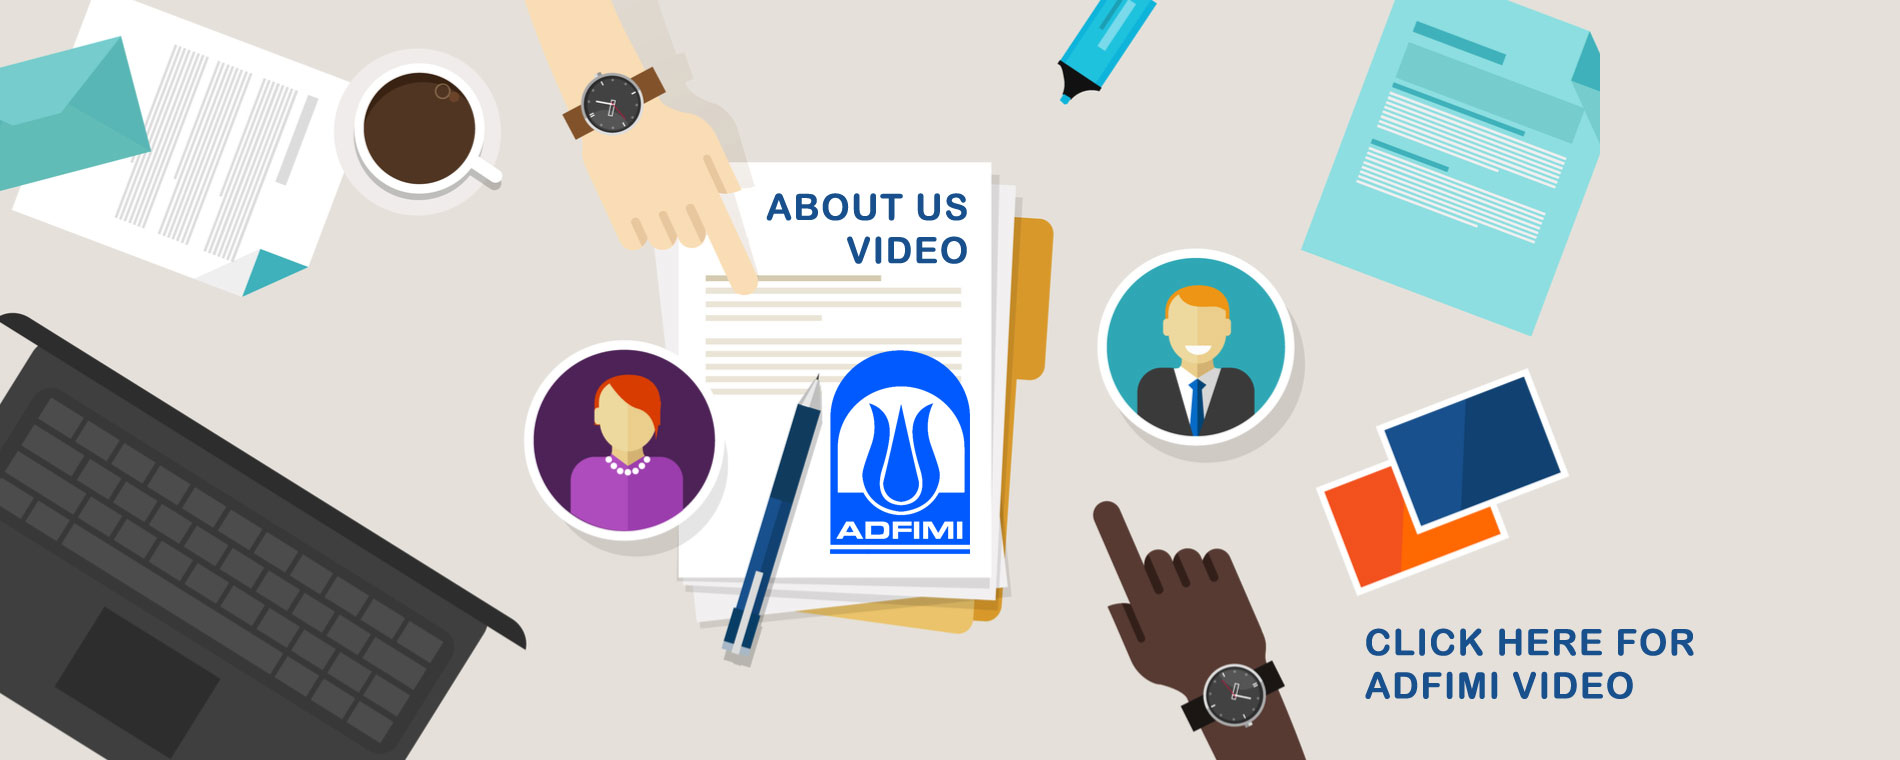 About Adfimi Video